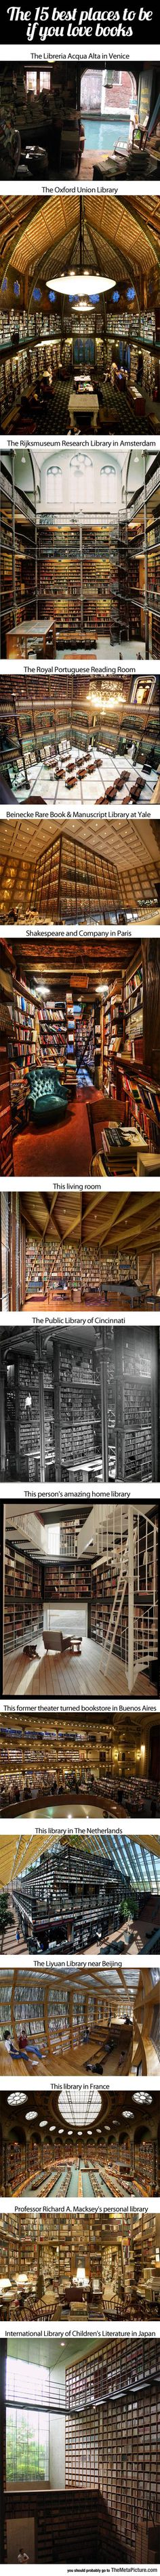 If You Love Books, These Places Are For You